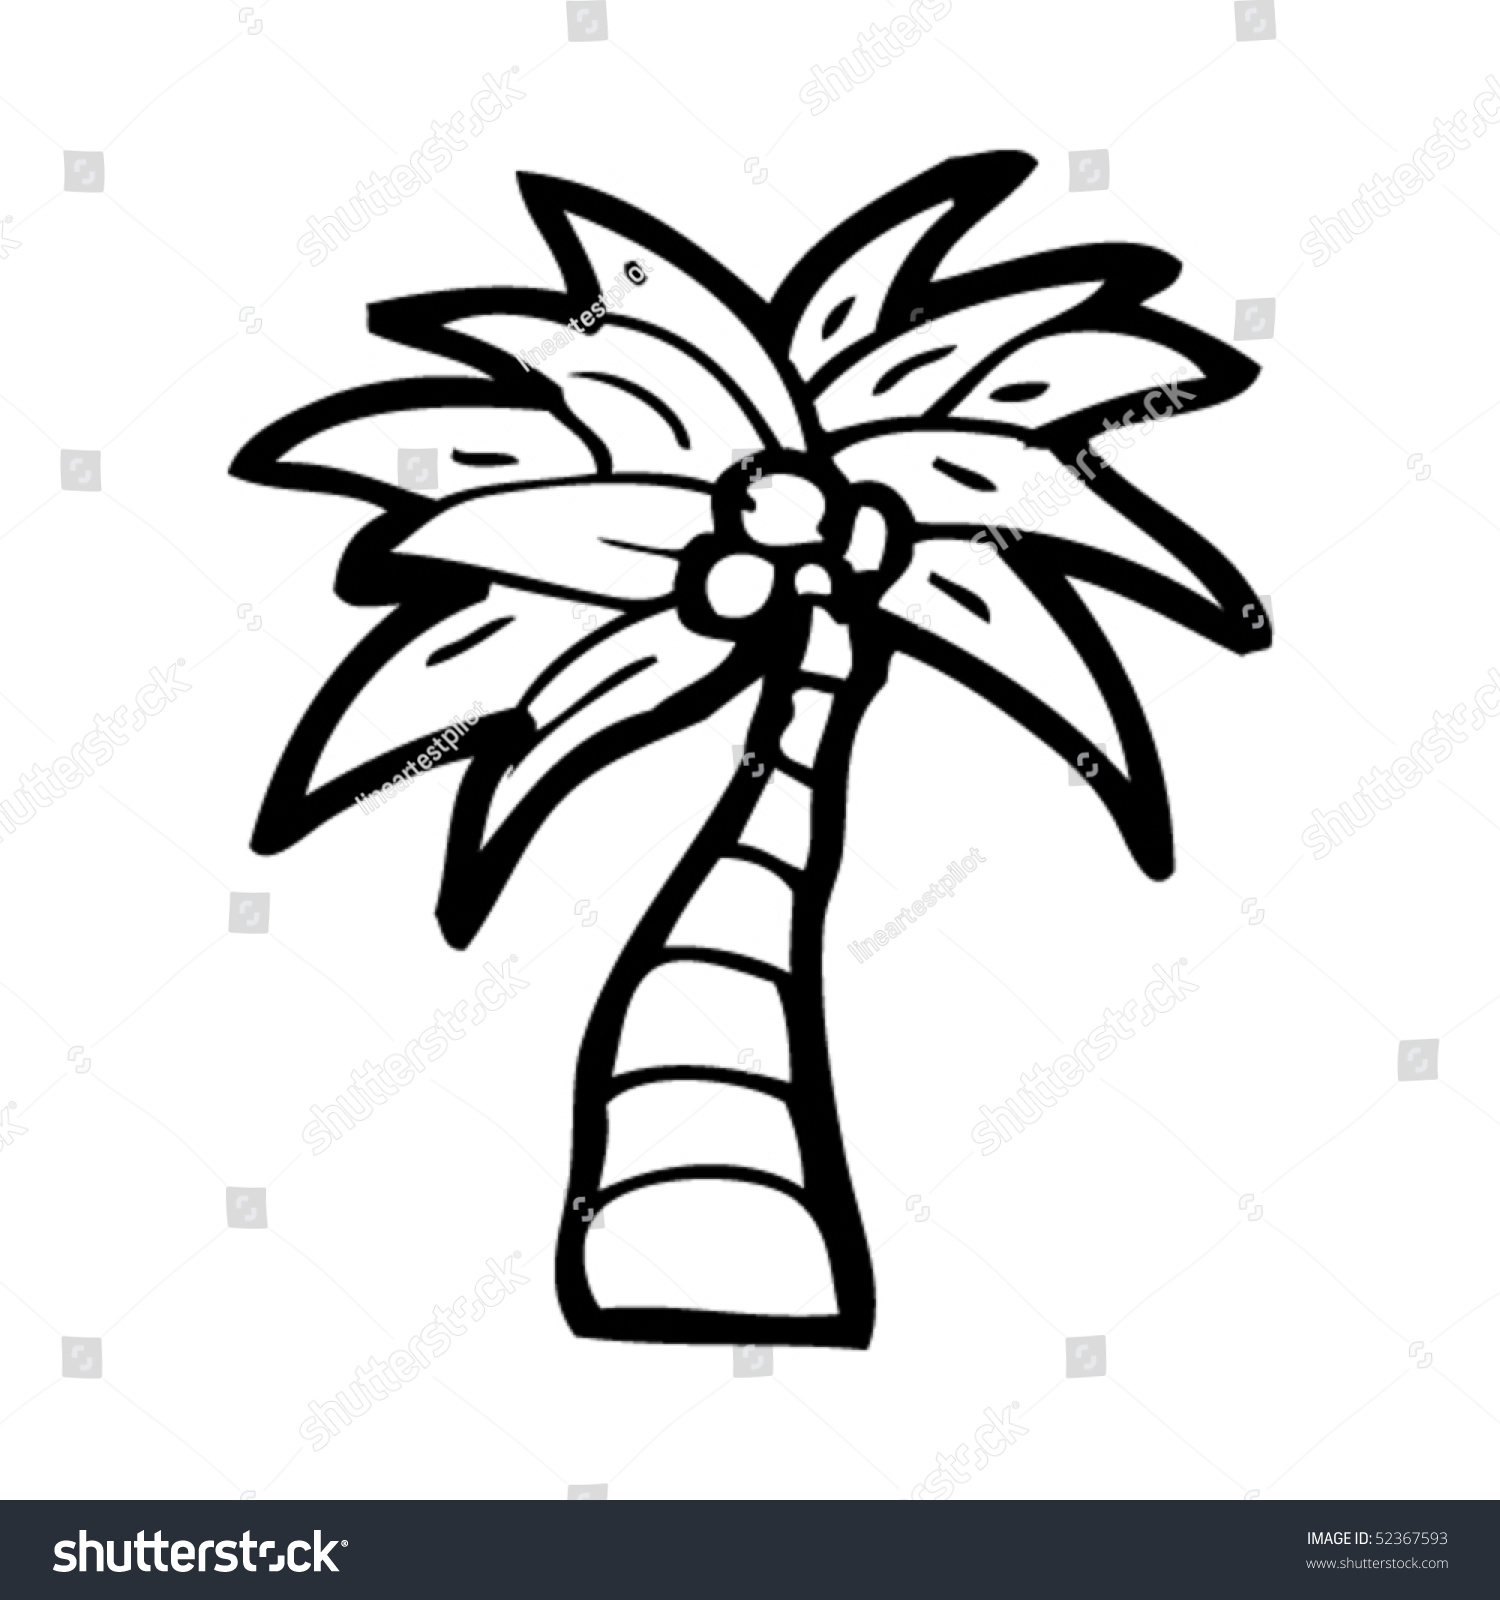 Uncategorized Drawing Of A Palm Tree quirky drawing coconut palm tree stock vector 52367593 shutterstock of tree